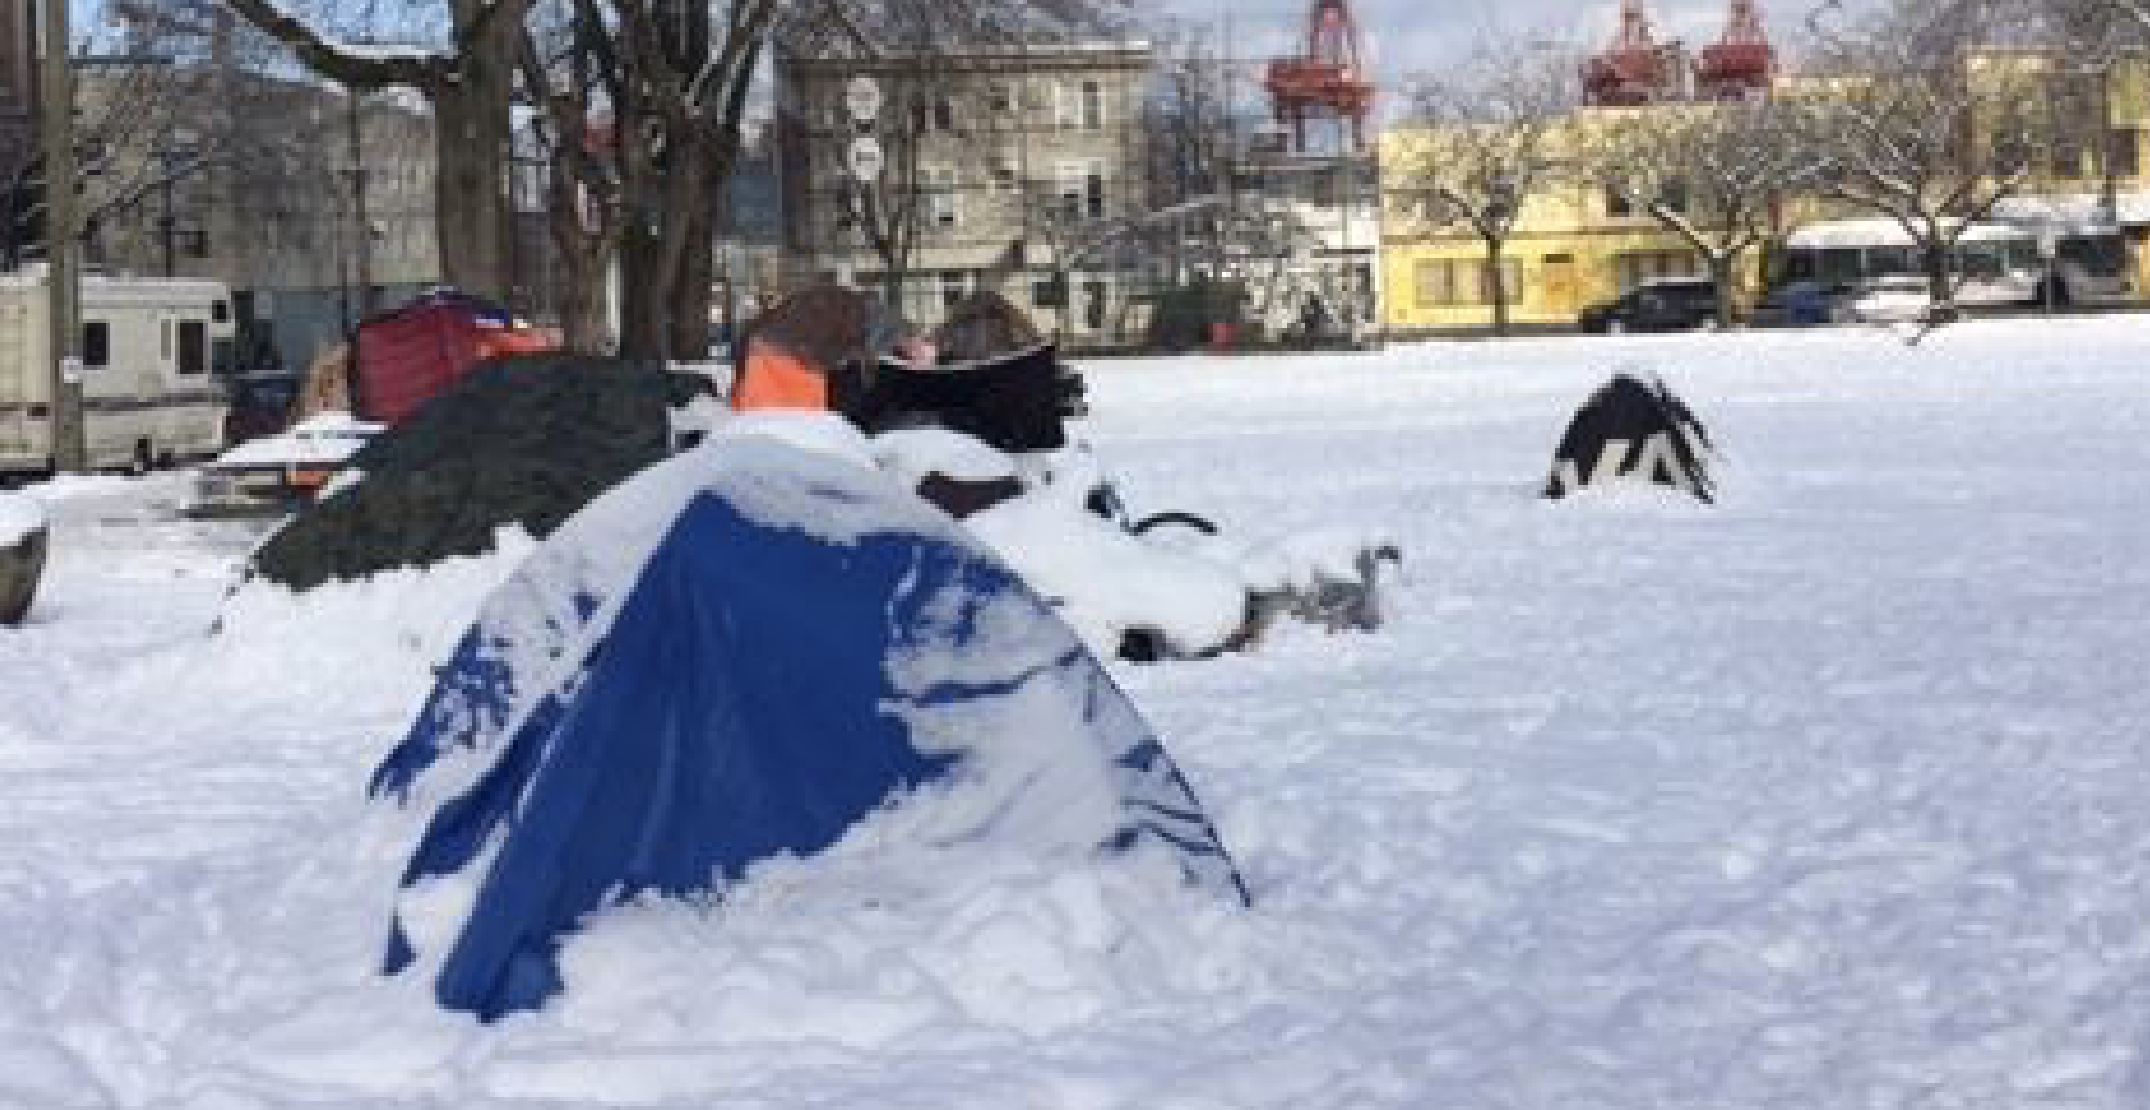 Nearly 100 homeless campers facing freezing conditions at DTES park